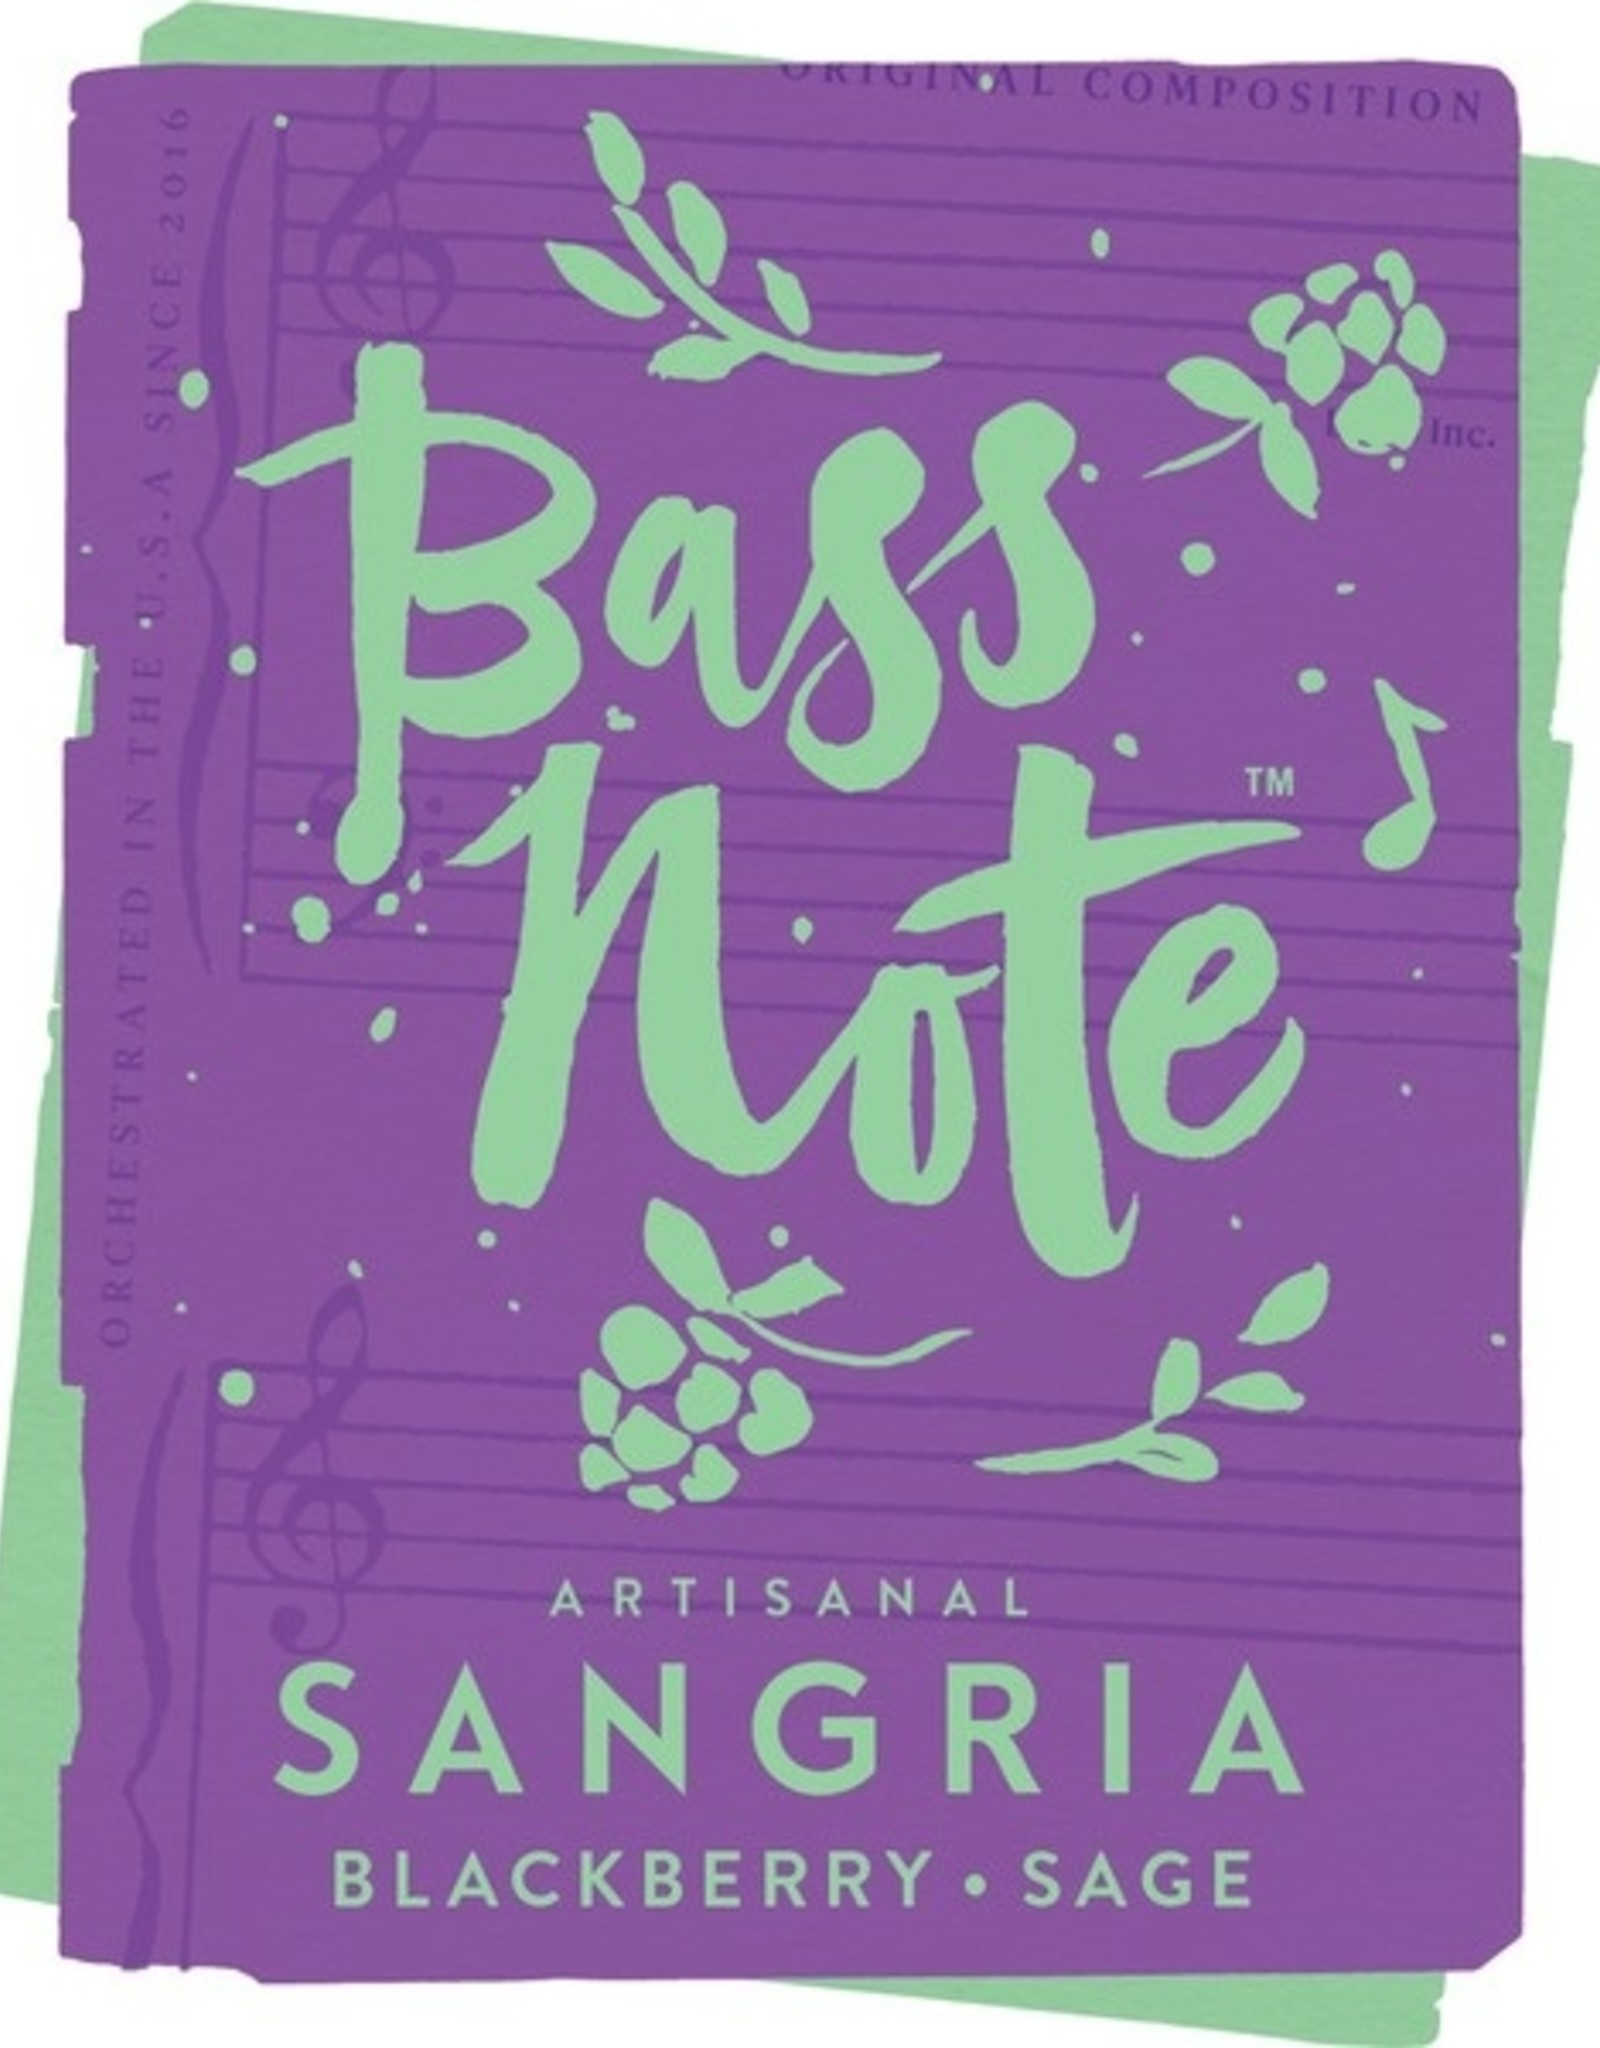 Bass Note Artisanal Sangria Blackberry Sage